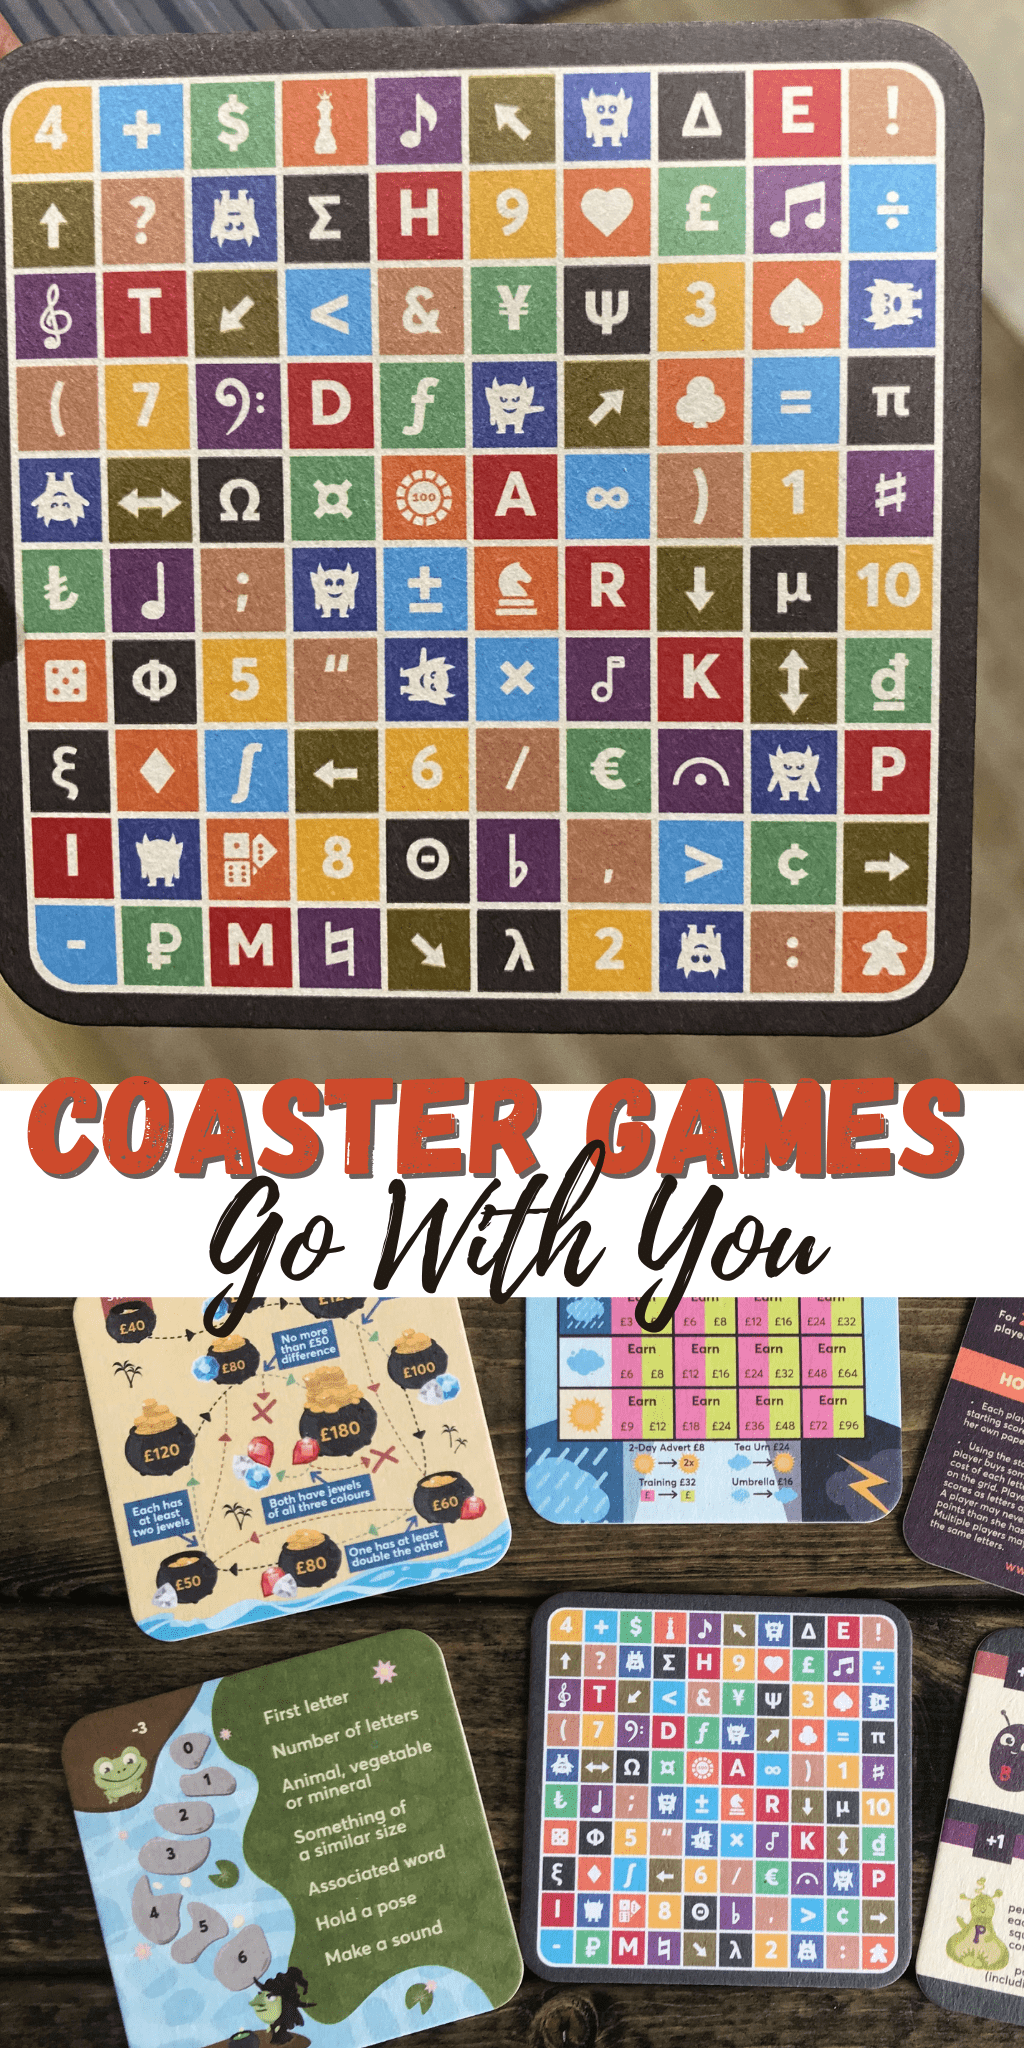 Coaster Games Go With You (